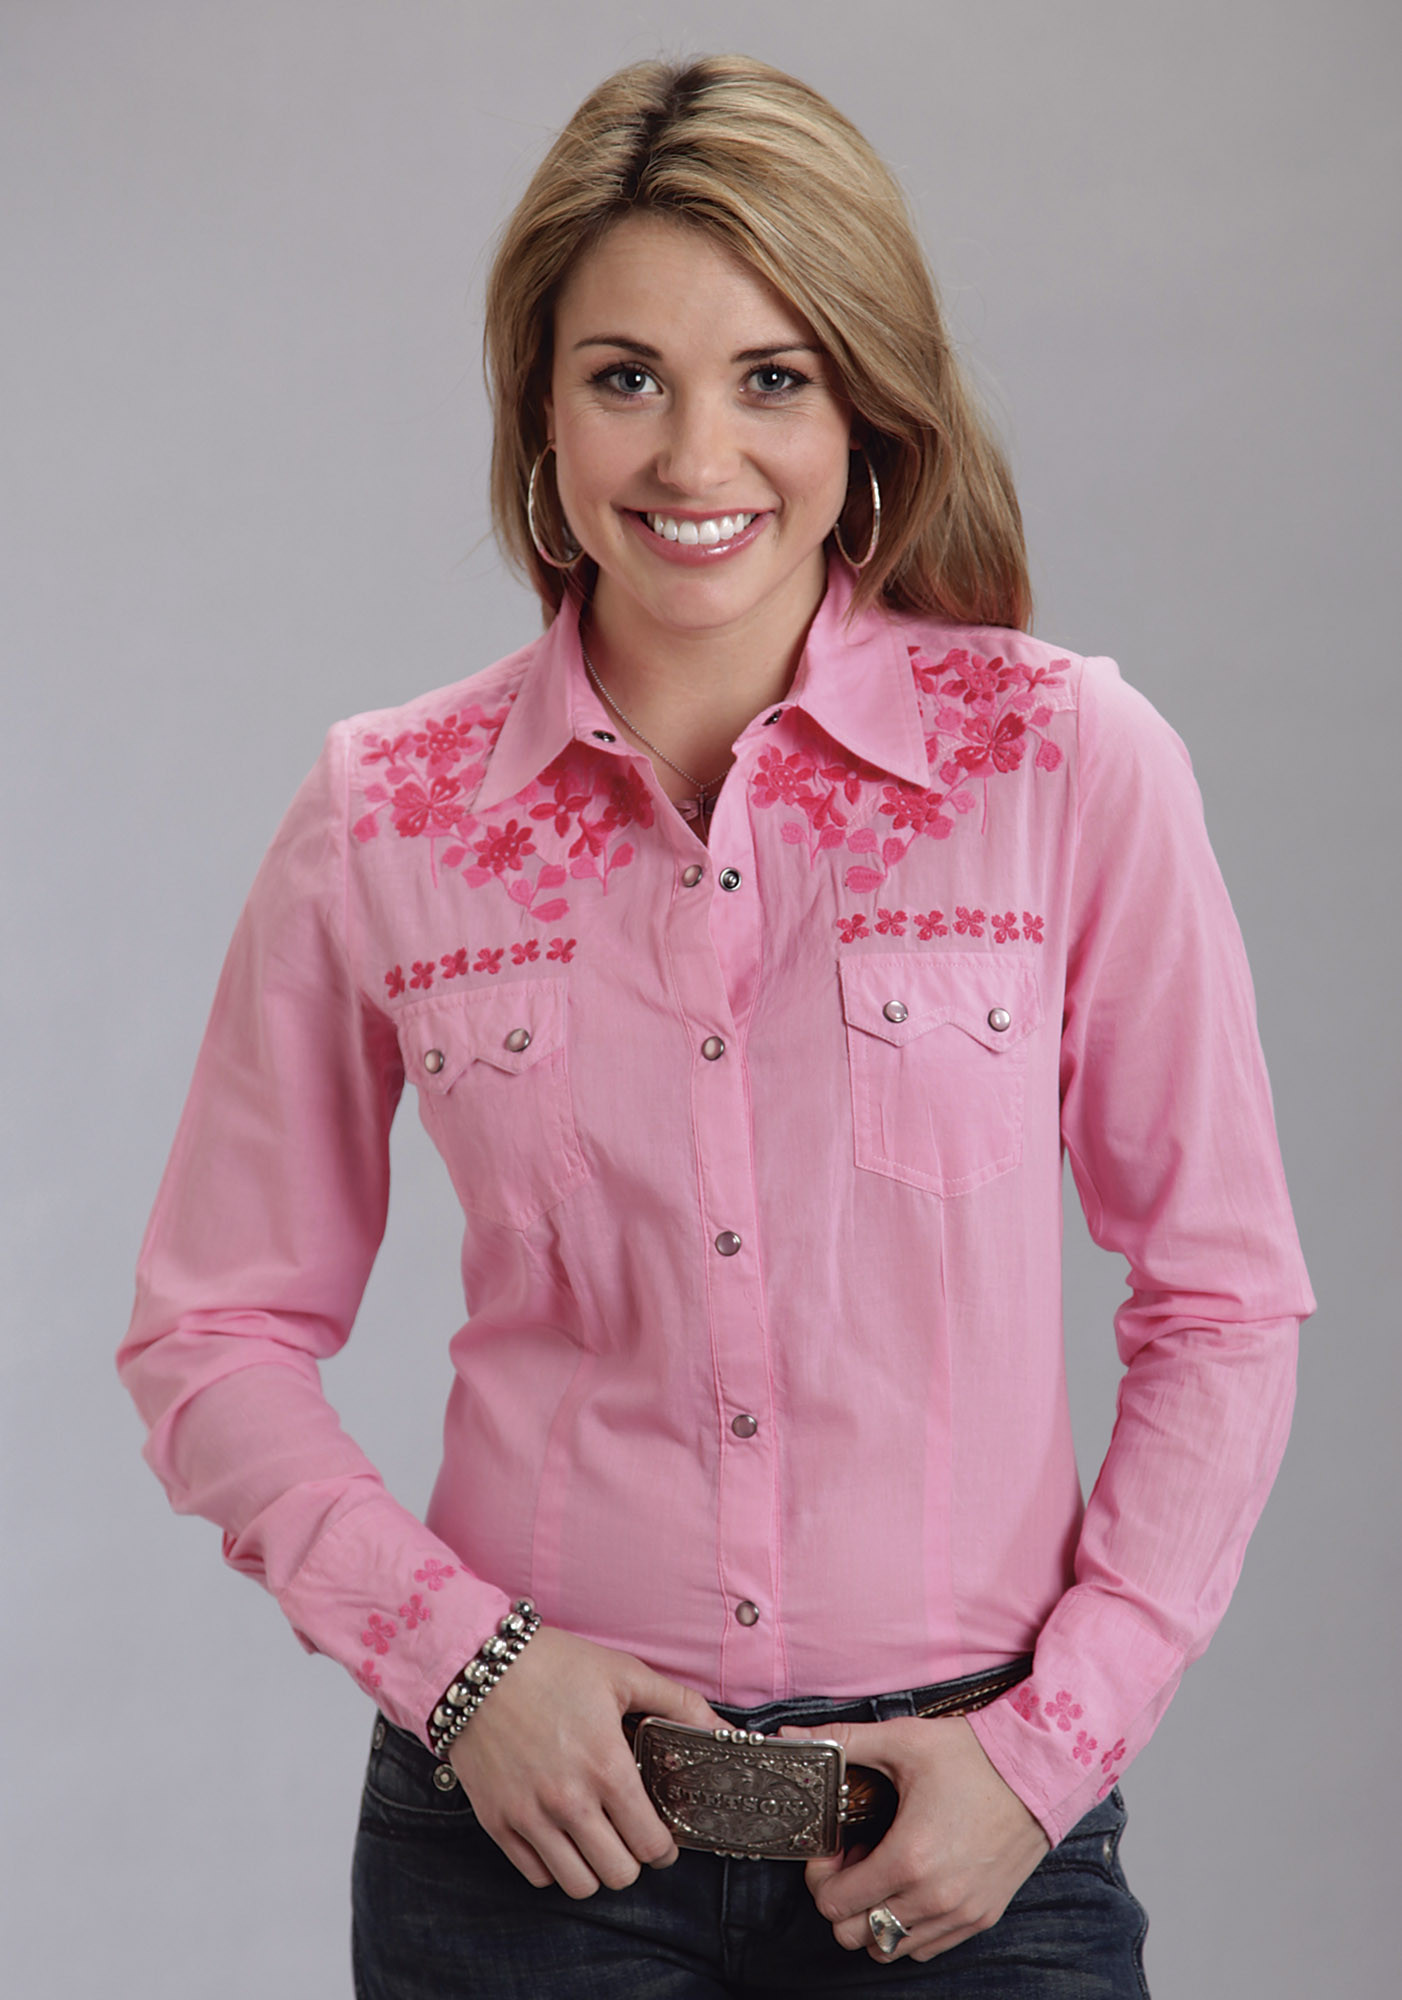 Stetson Womens Embroidered Western Shirt - Honey